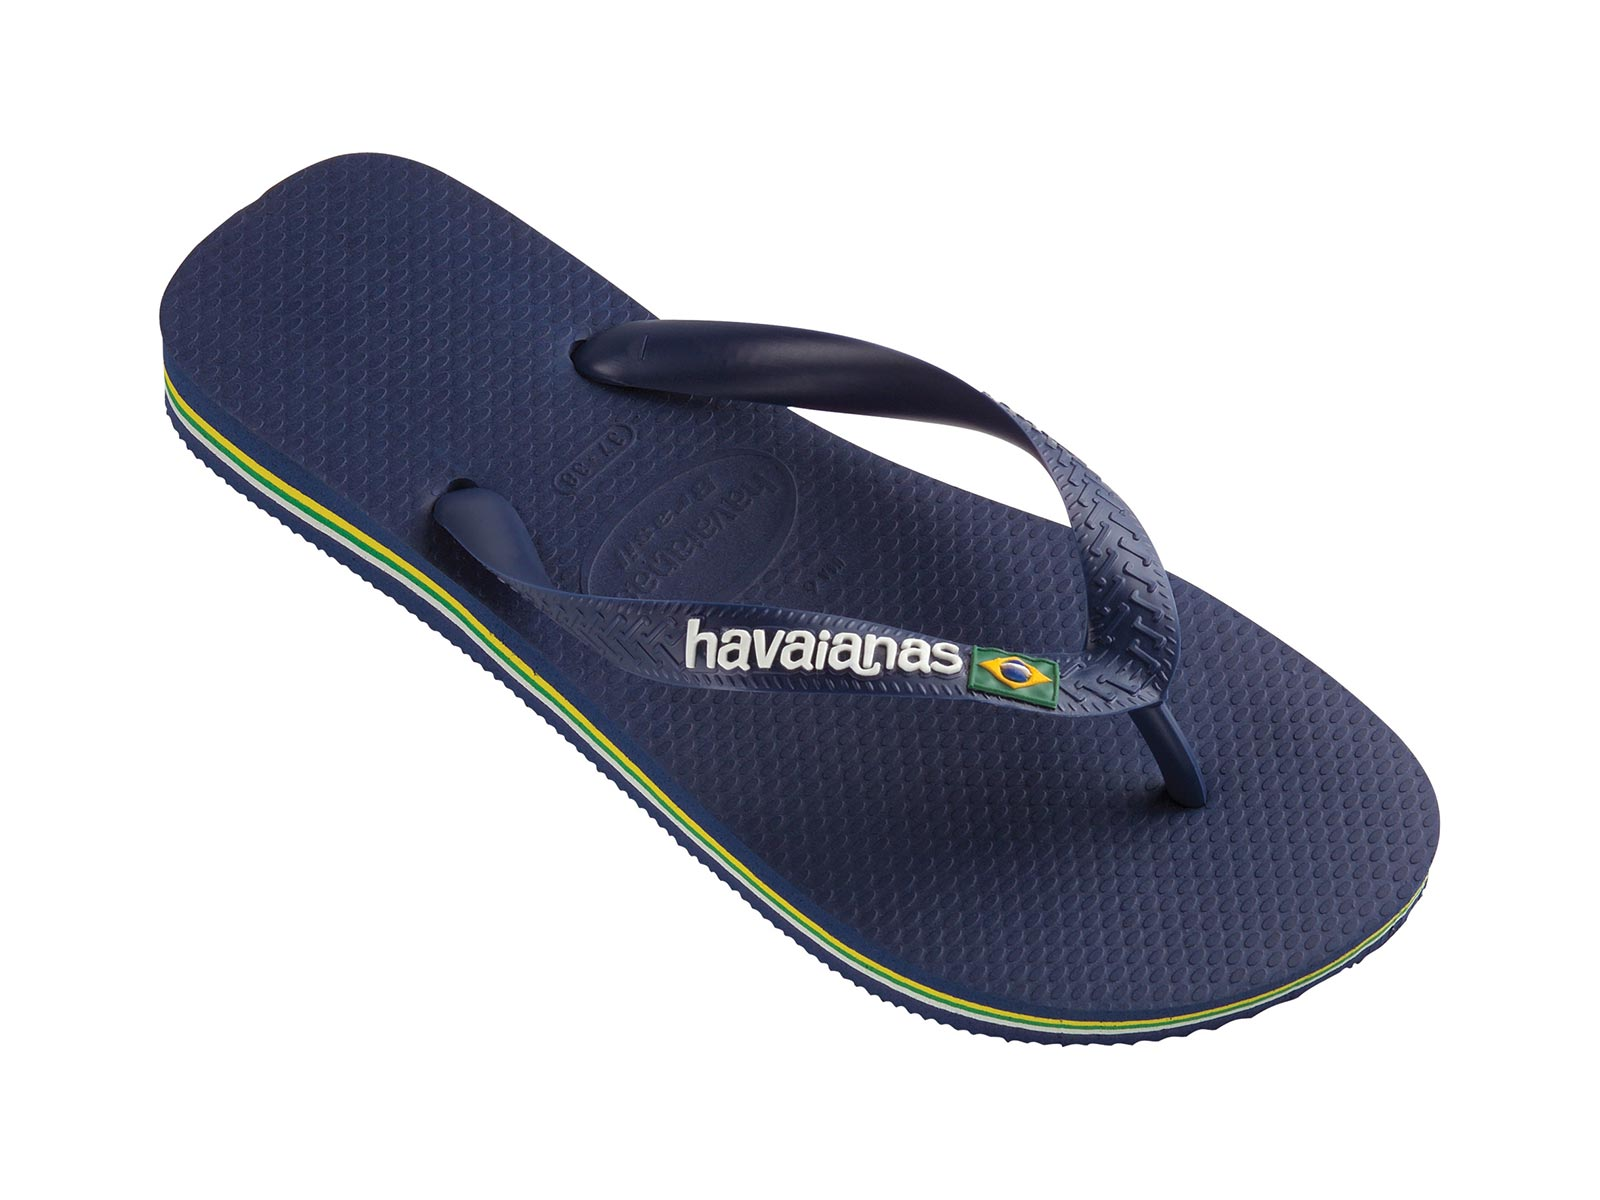 "HAVAIANAS /""BRASIL LOGO/"" FLIP FLOPS NAVY GREEN /& YELLOW  UK 4 EU 37"